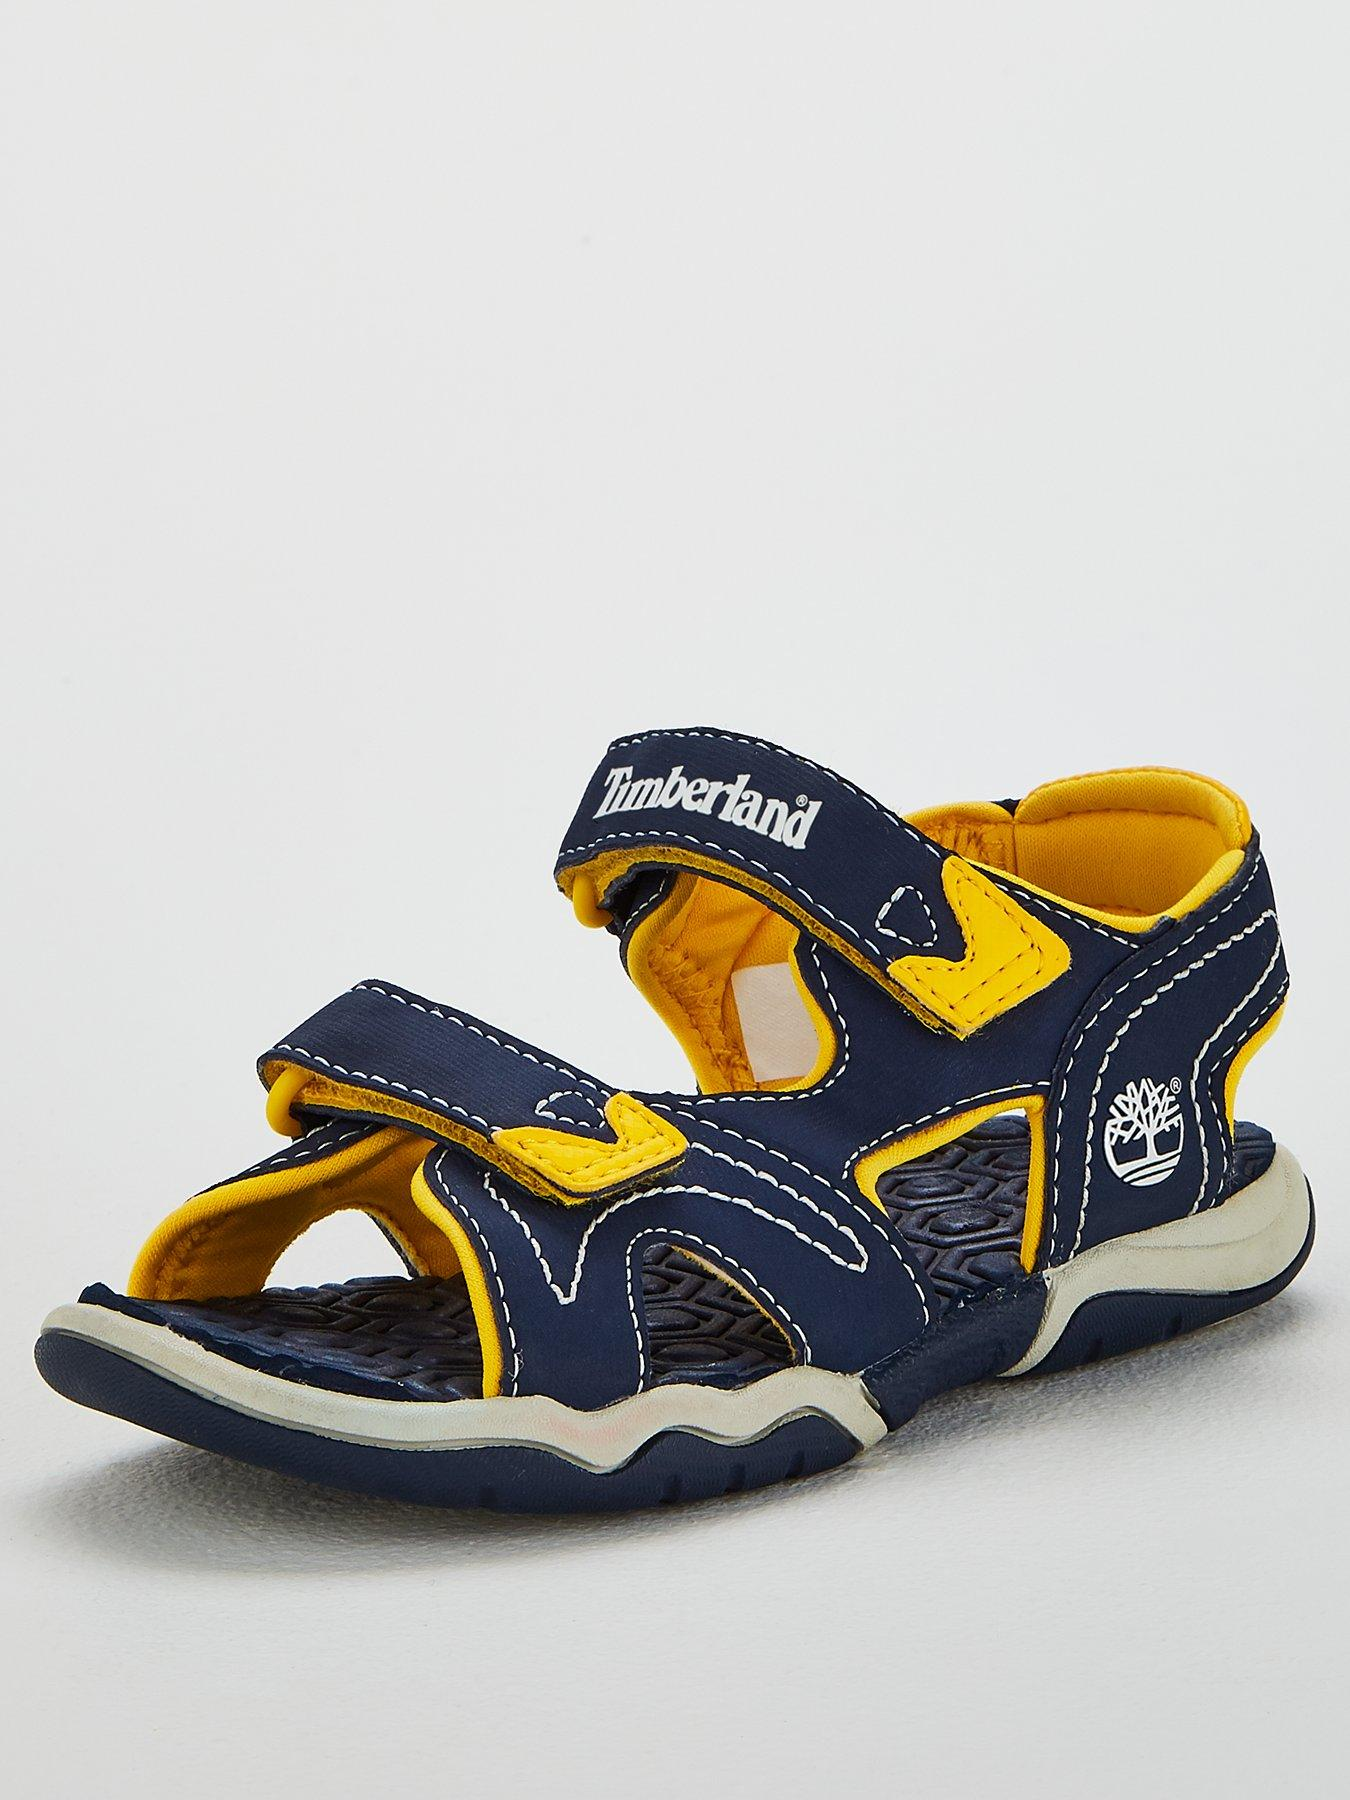 Smart Toddler Timberland Sandals Boys' Shoes Kids' Clothes, Shoes & Accs.